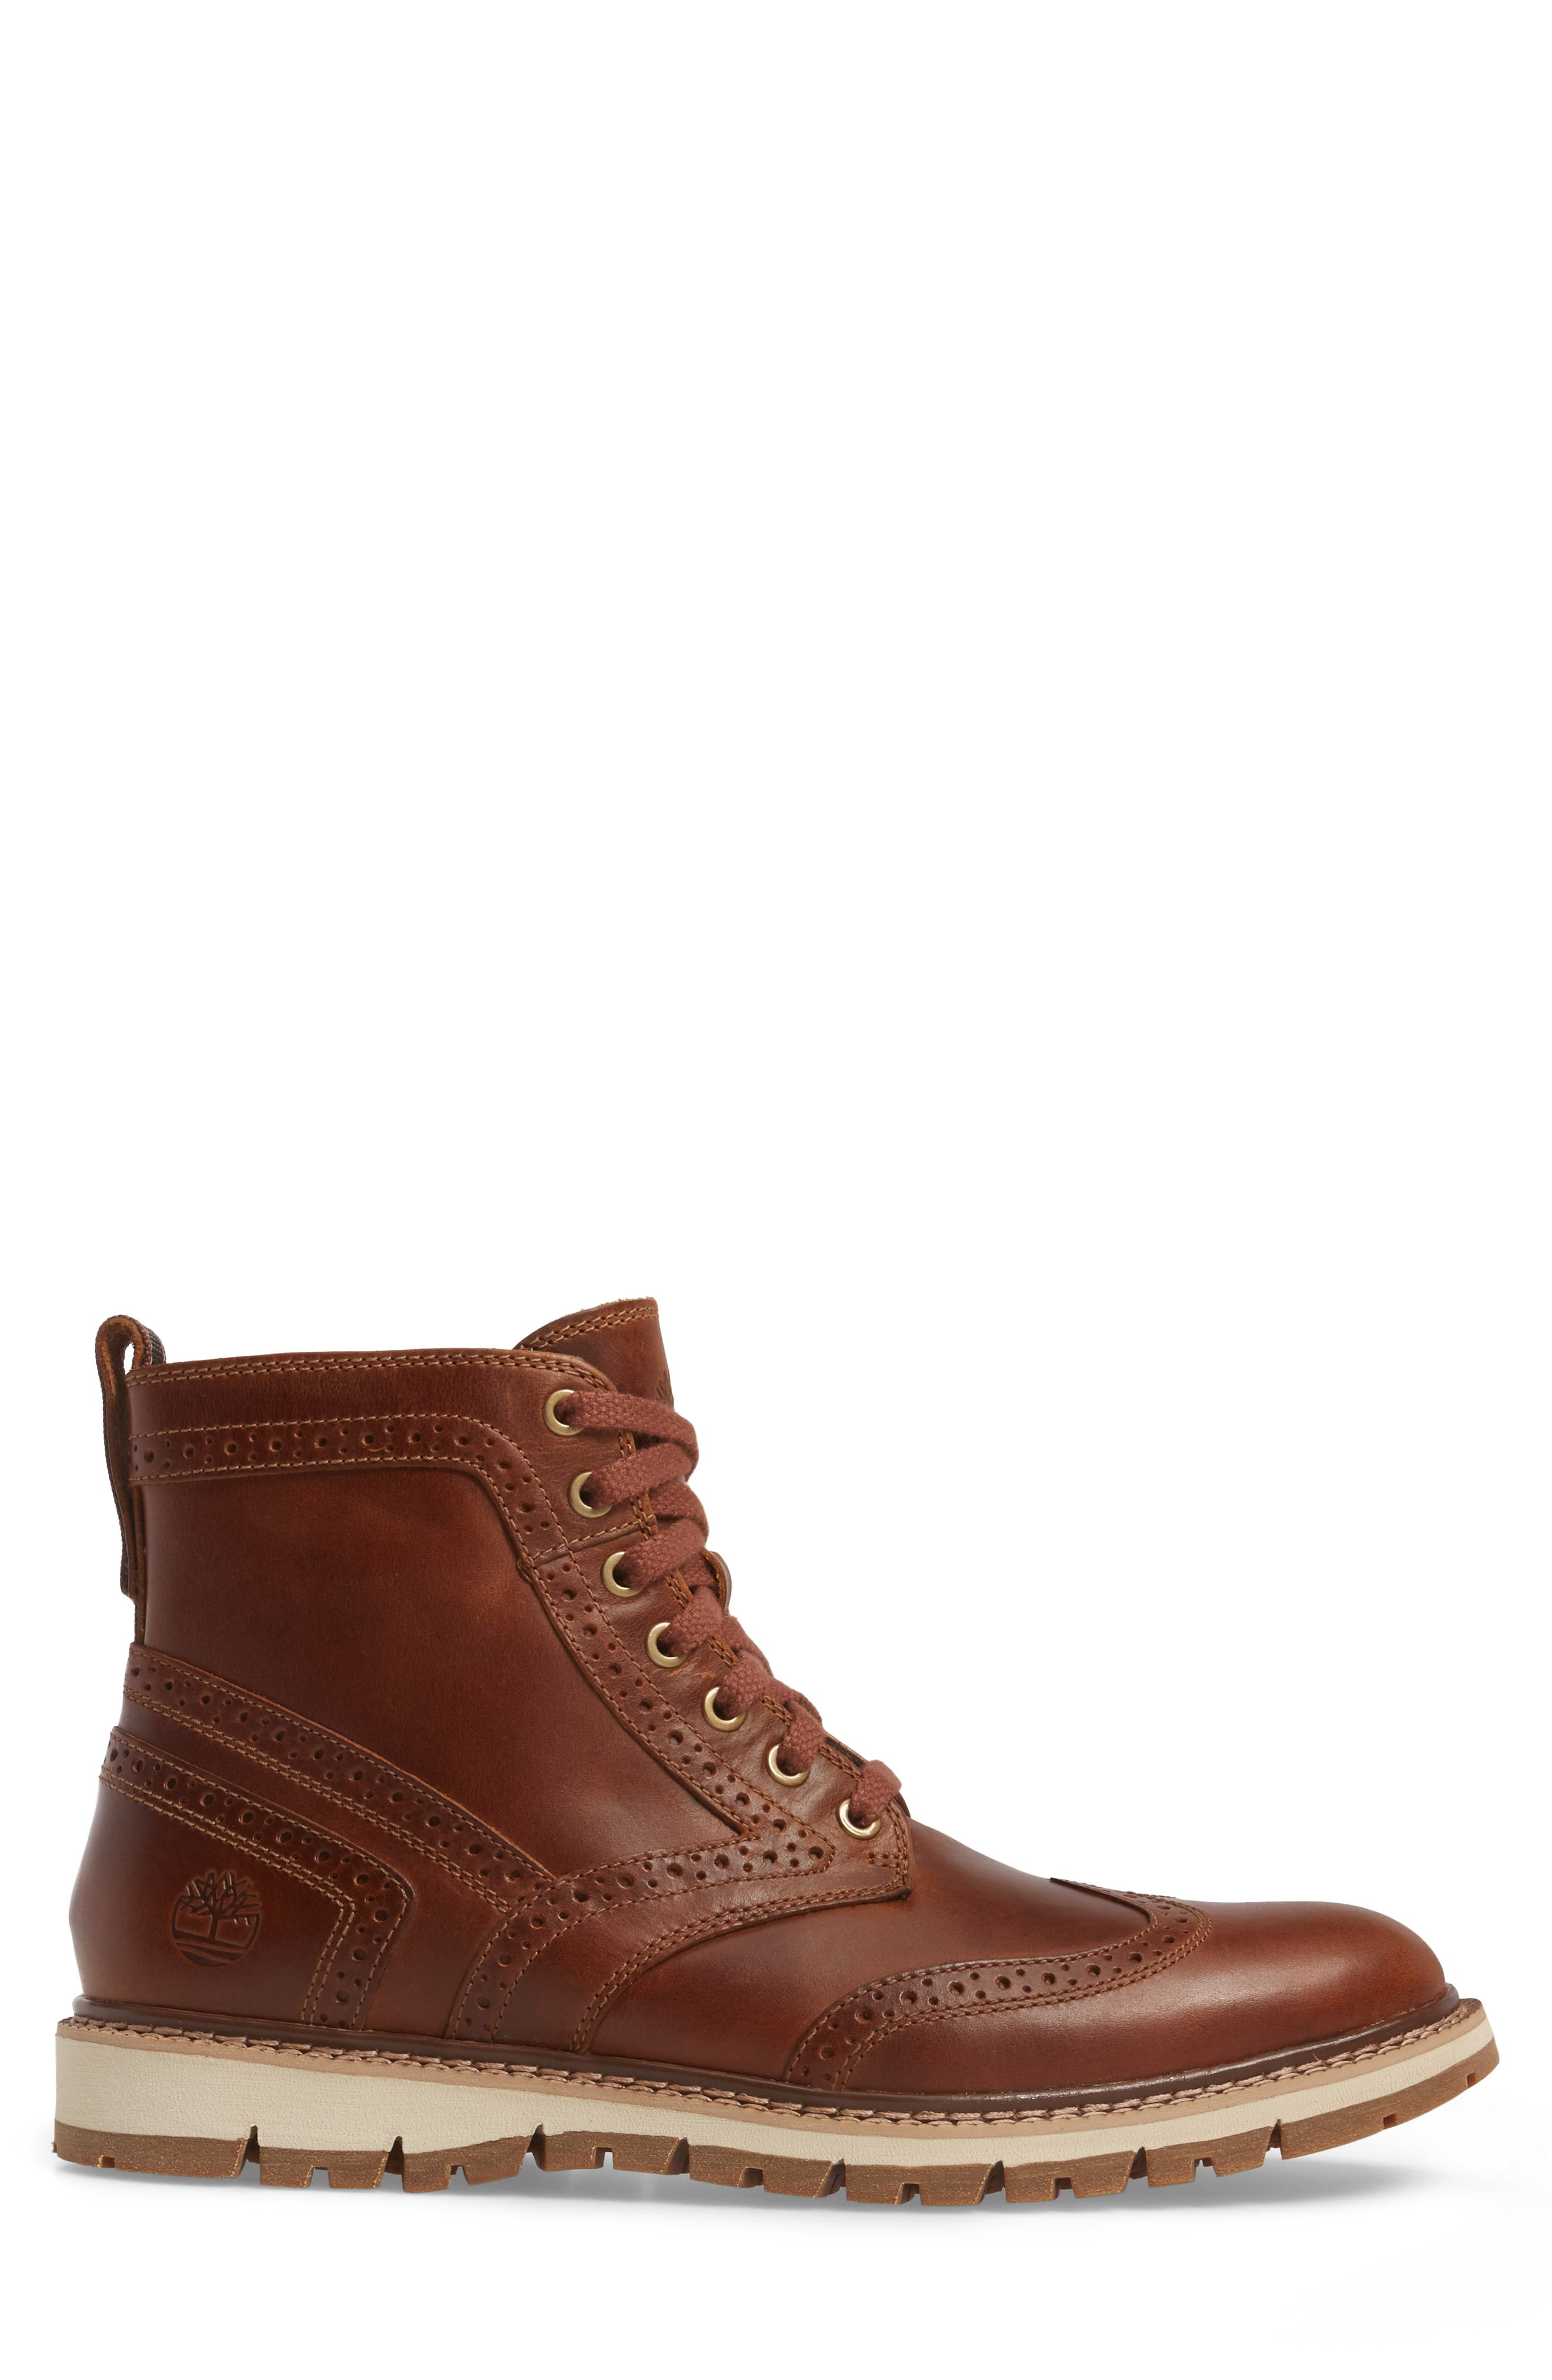 Britton Hill Wingtip Boot,                             Alternate thumbnail 6, color,